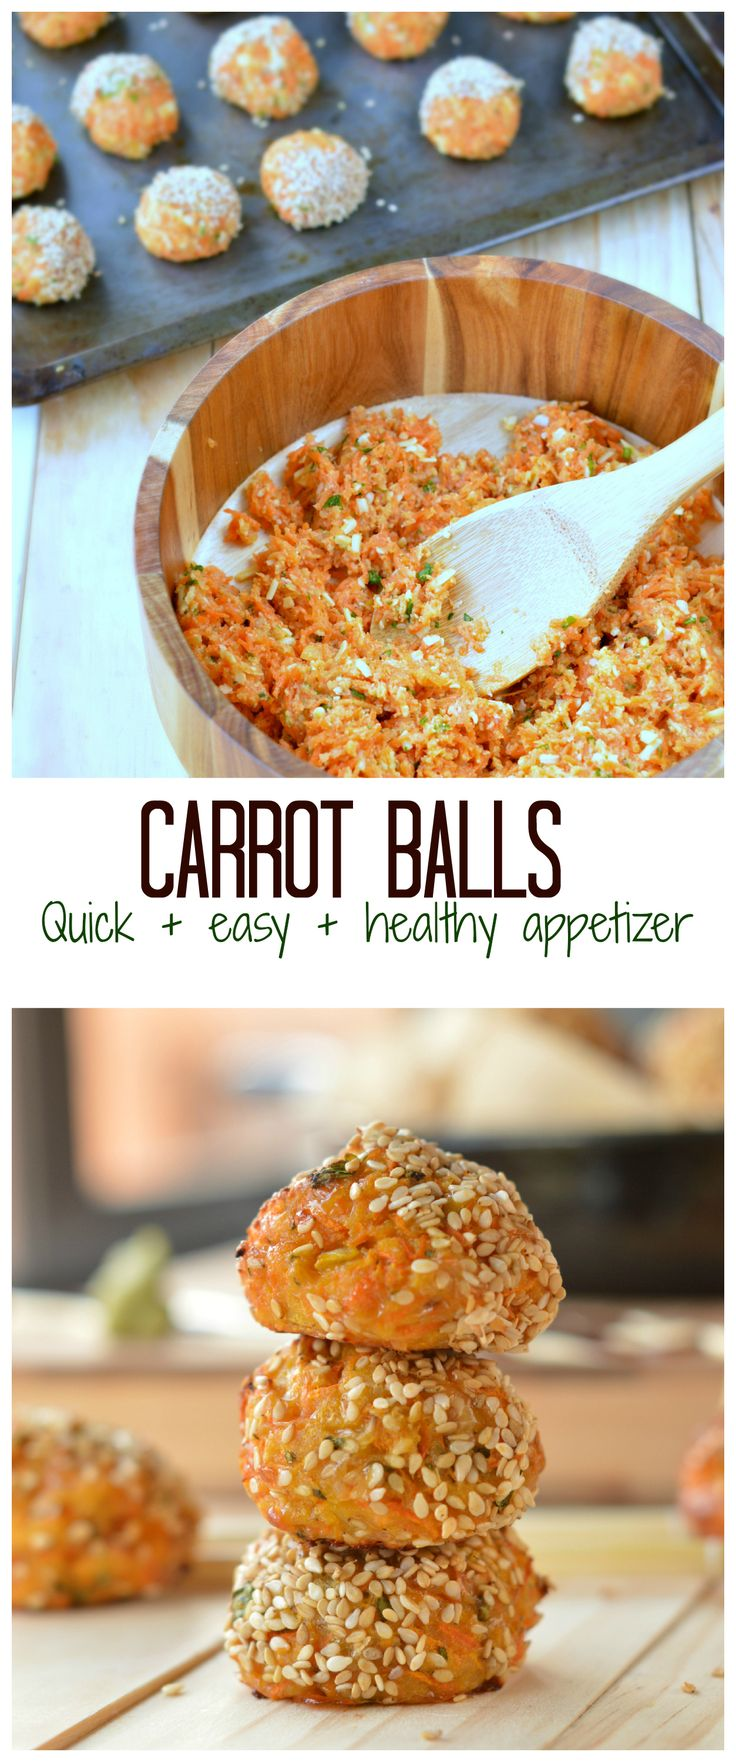 Those Carrot Sesame Balls are SOO easy to make & healthy ! A crispy sesame crust and cheesy centre. Only 15 minutes to bake and gluten free! An easy & healthy appetizer or party game food! #glutenfree #carrot #balls #appetizers #healthy